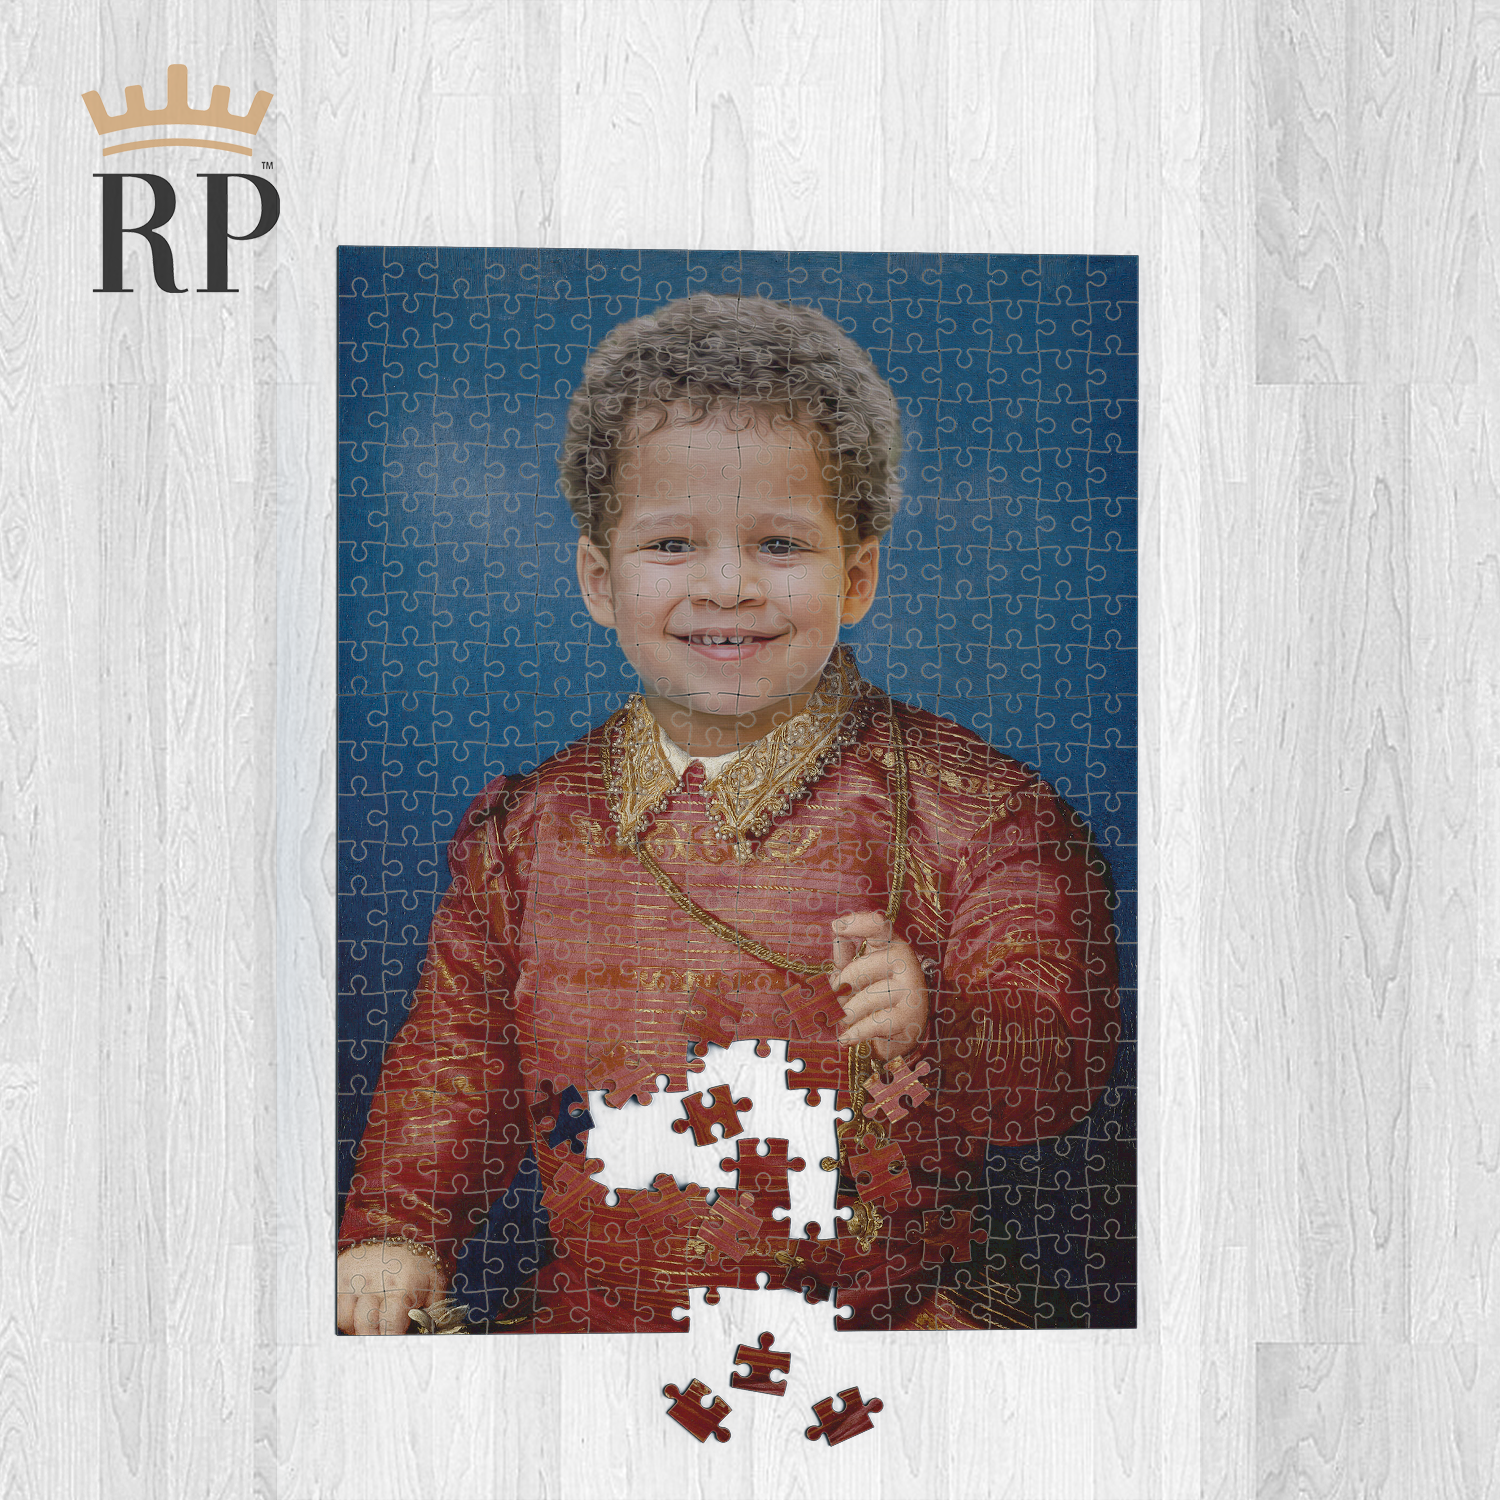 JAMES VI (BABY) - CUSTOM ROYAL PUZZLE